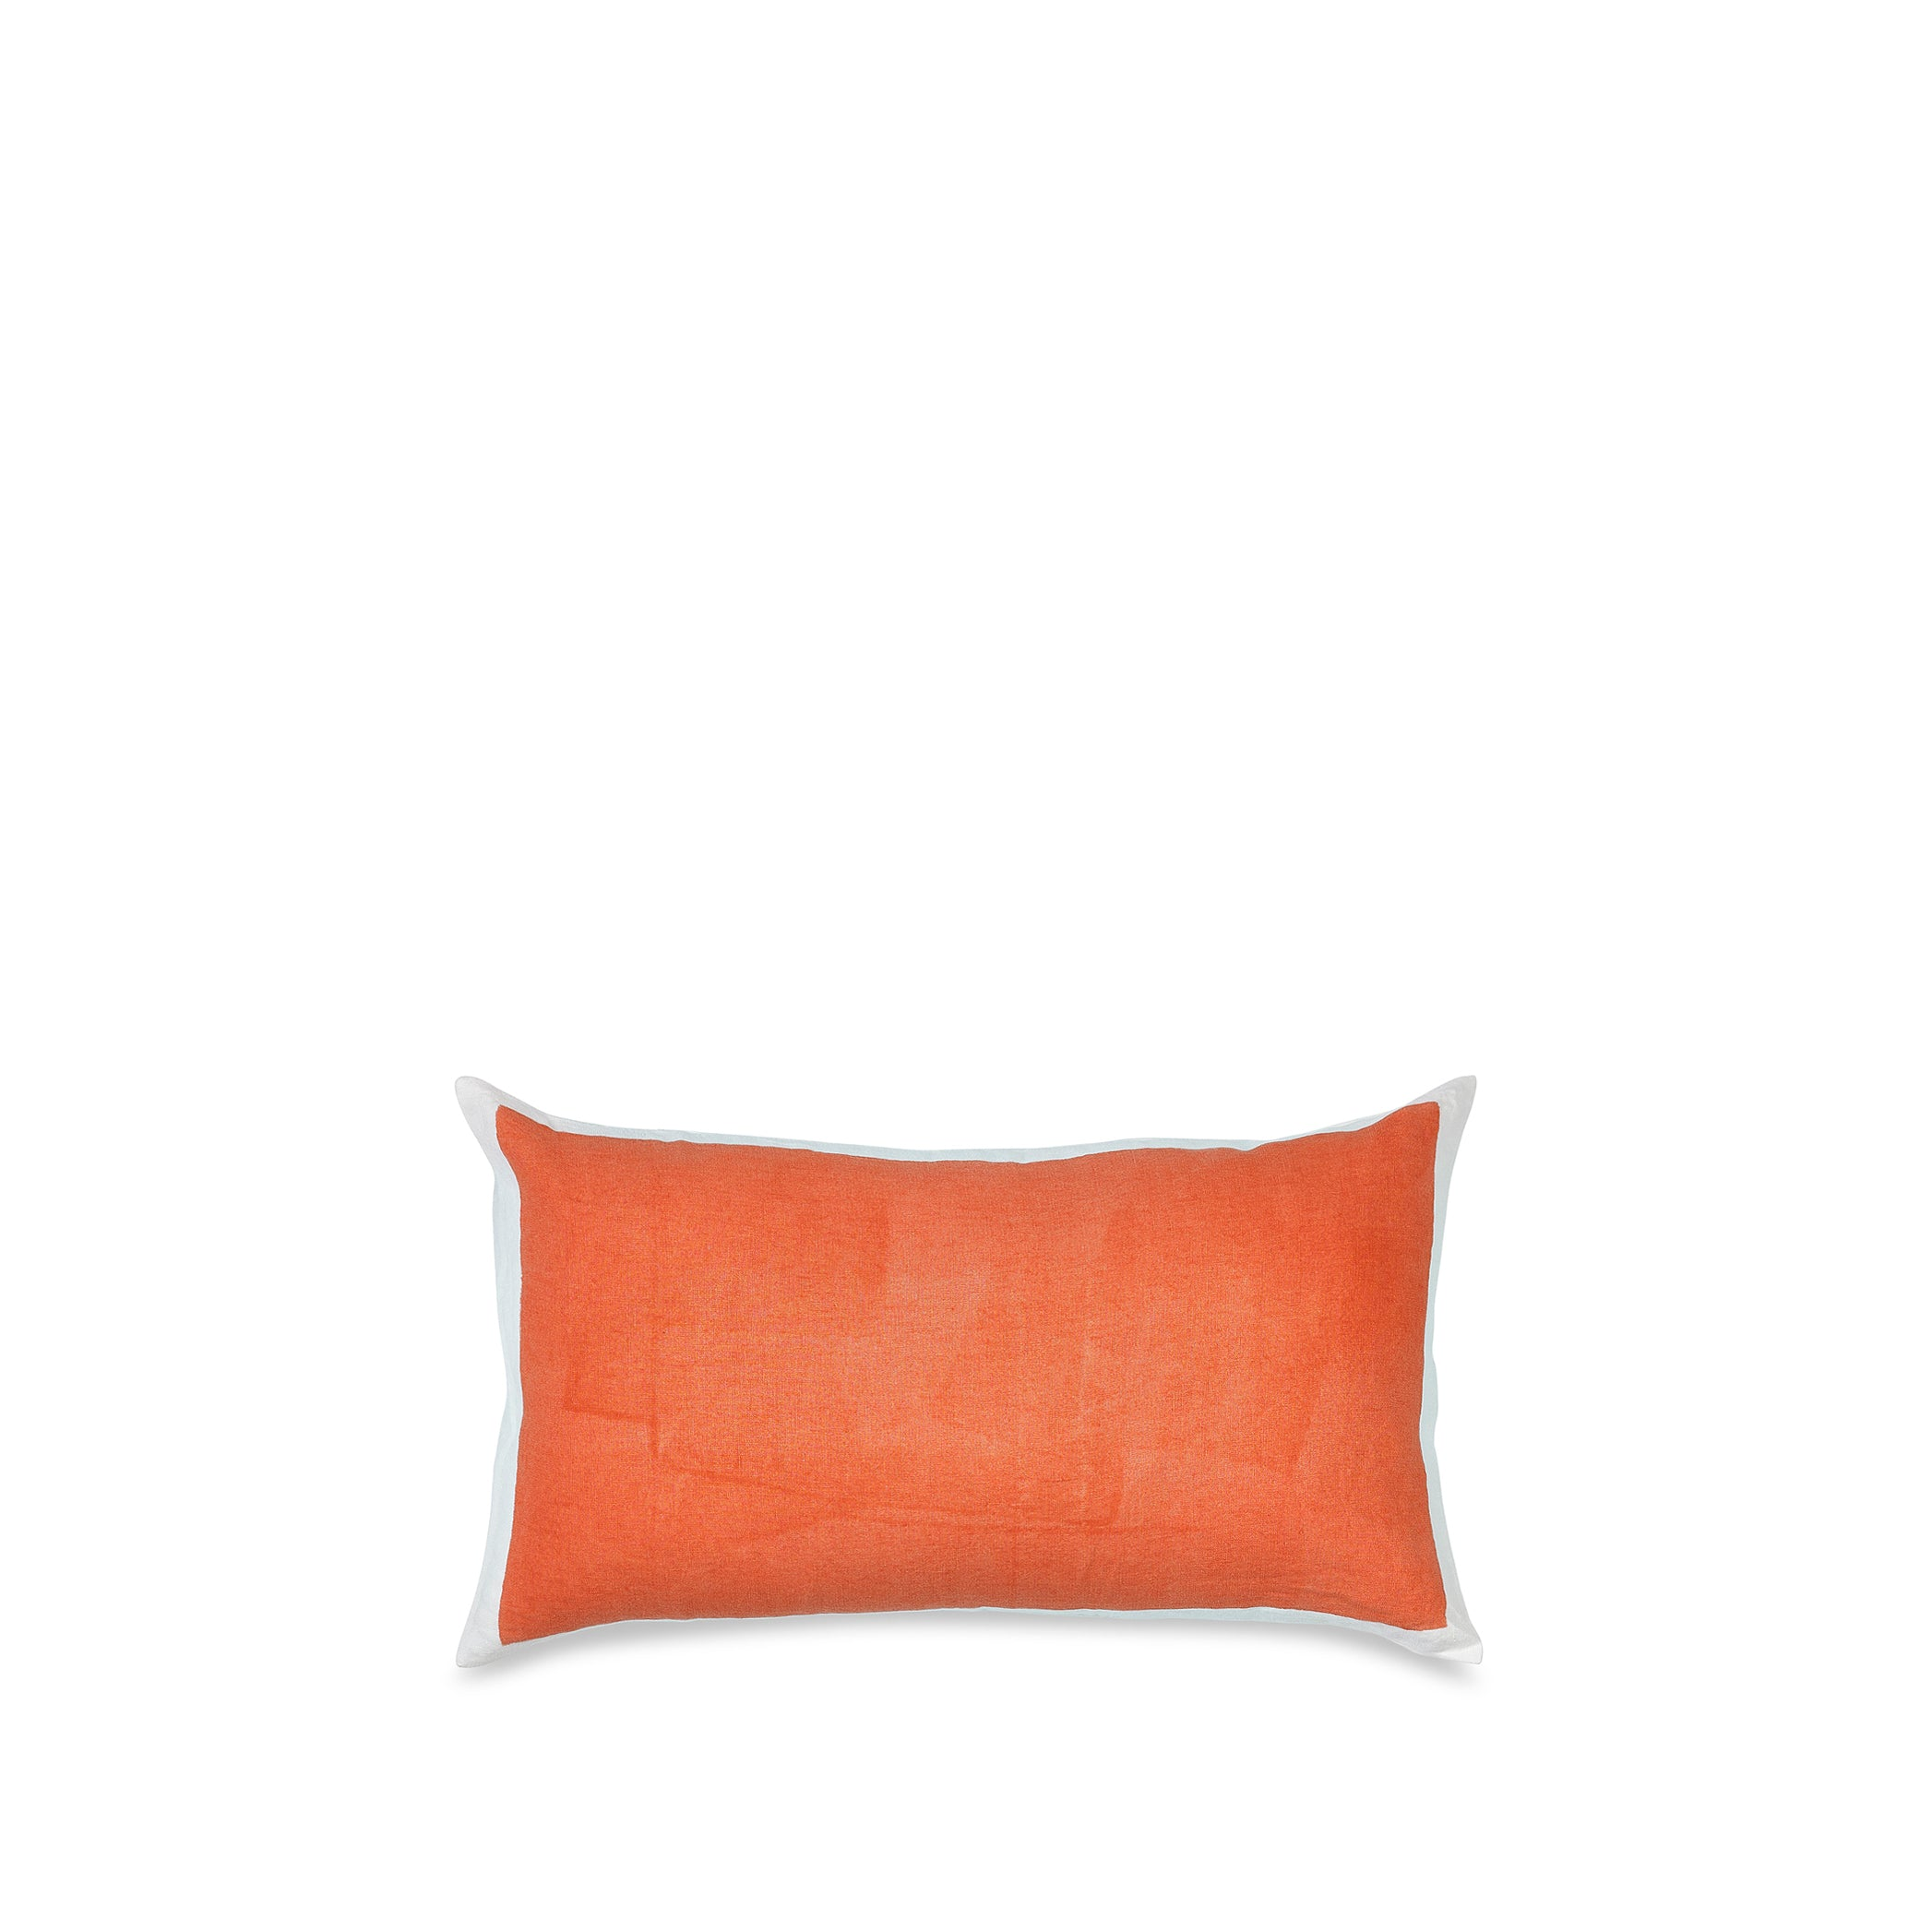 Hand Painted Linen Cushion in Coral, 50cm x 30cm